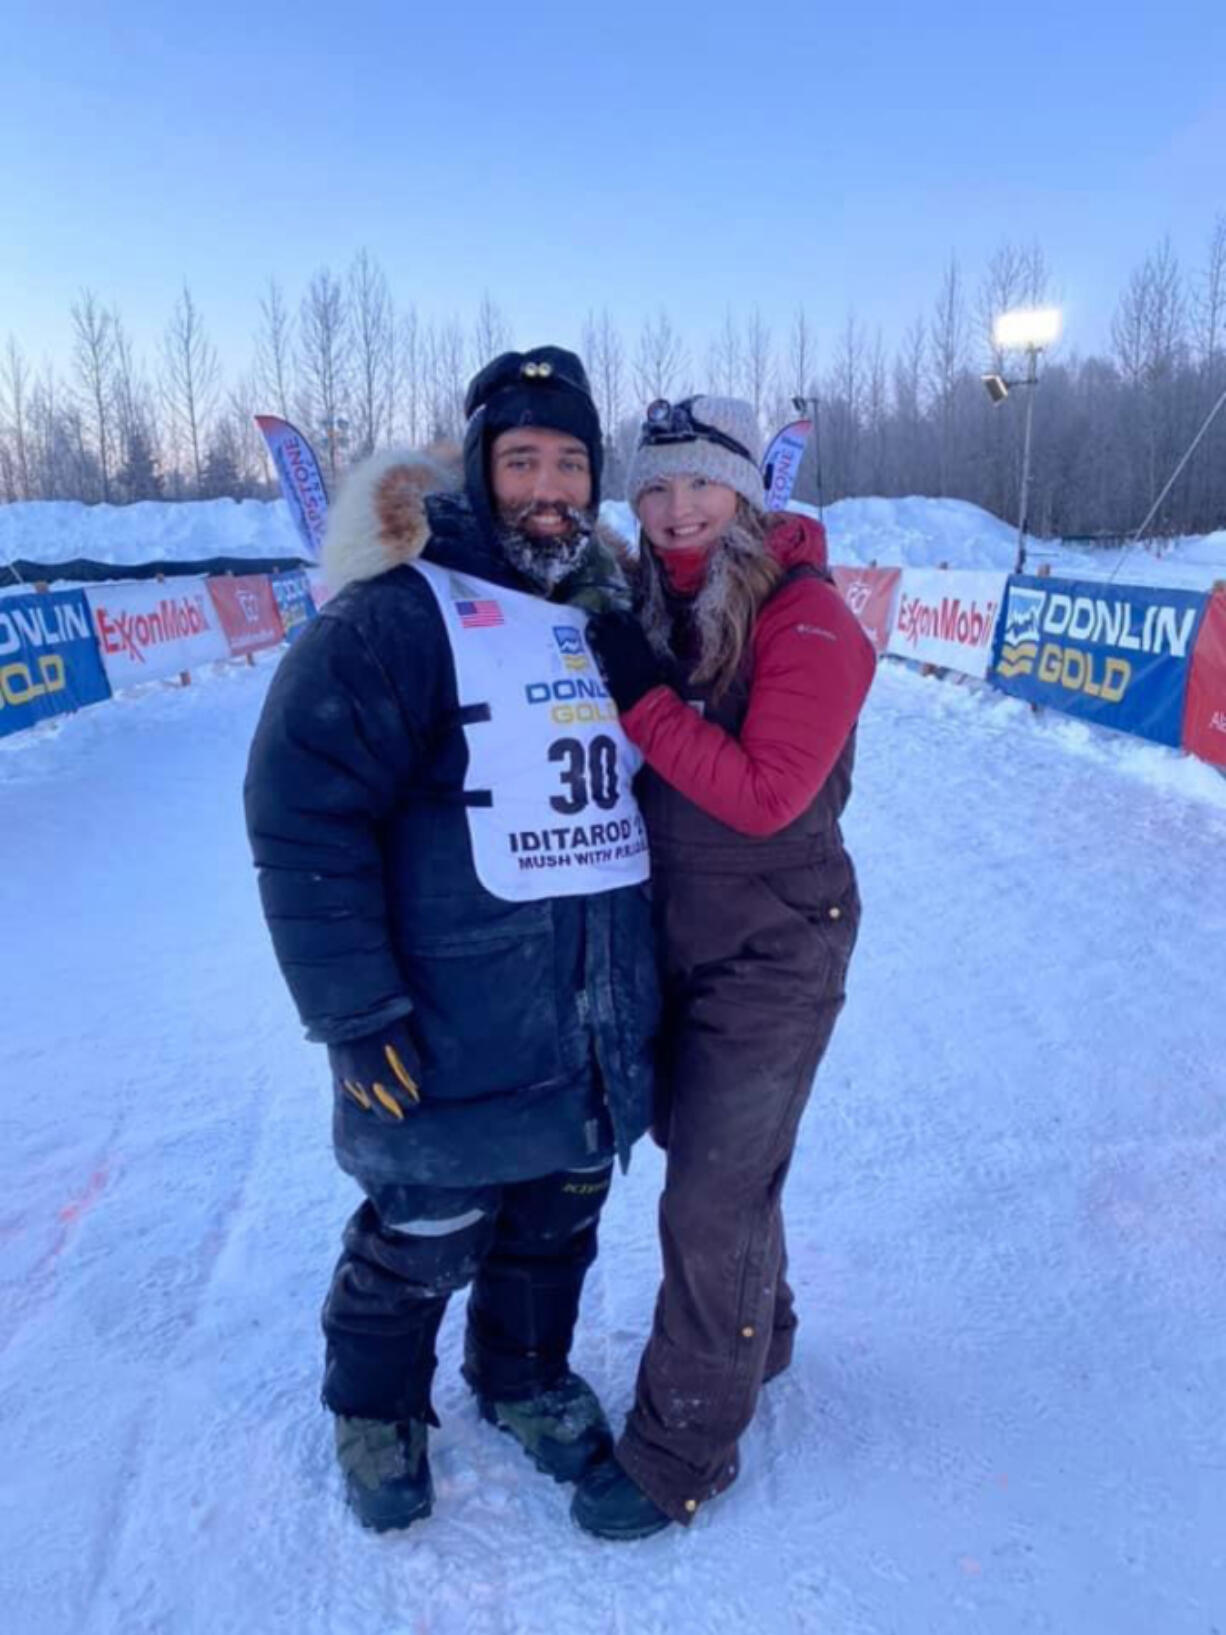 Josh McNeal poses with his wife Jobie after completing the 2021 Iditarod Sled Dog race.